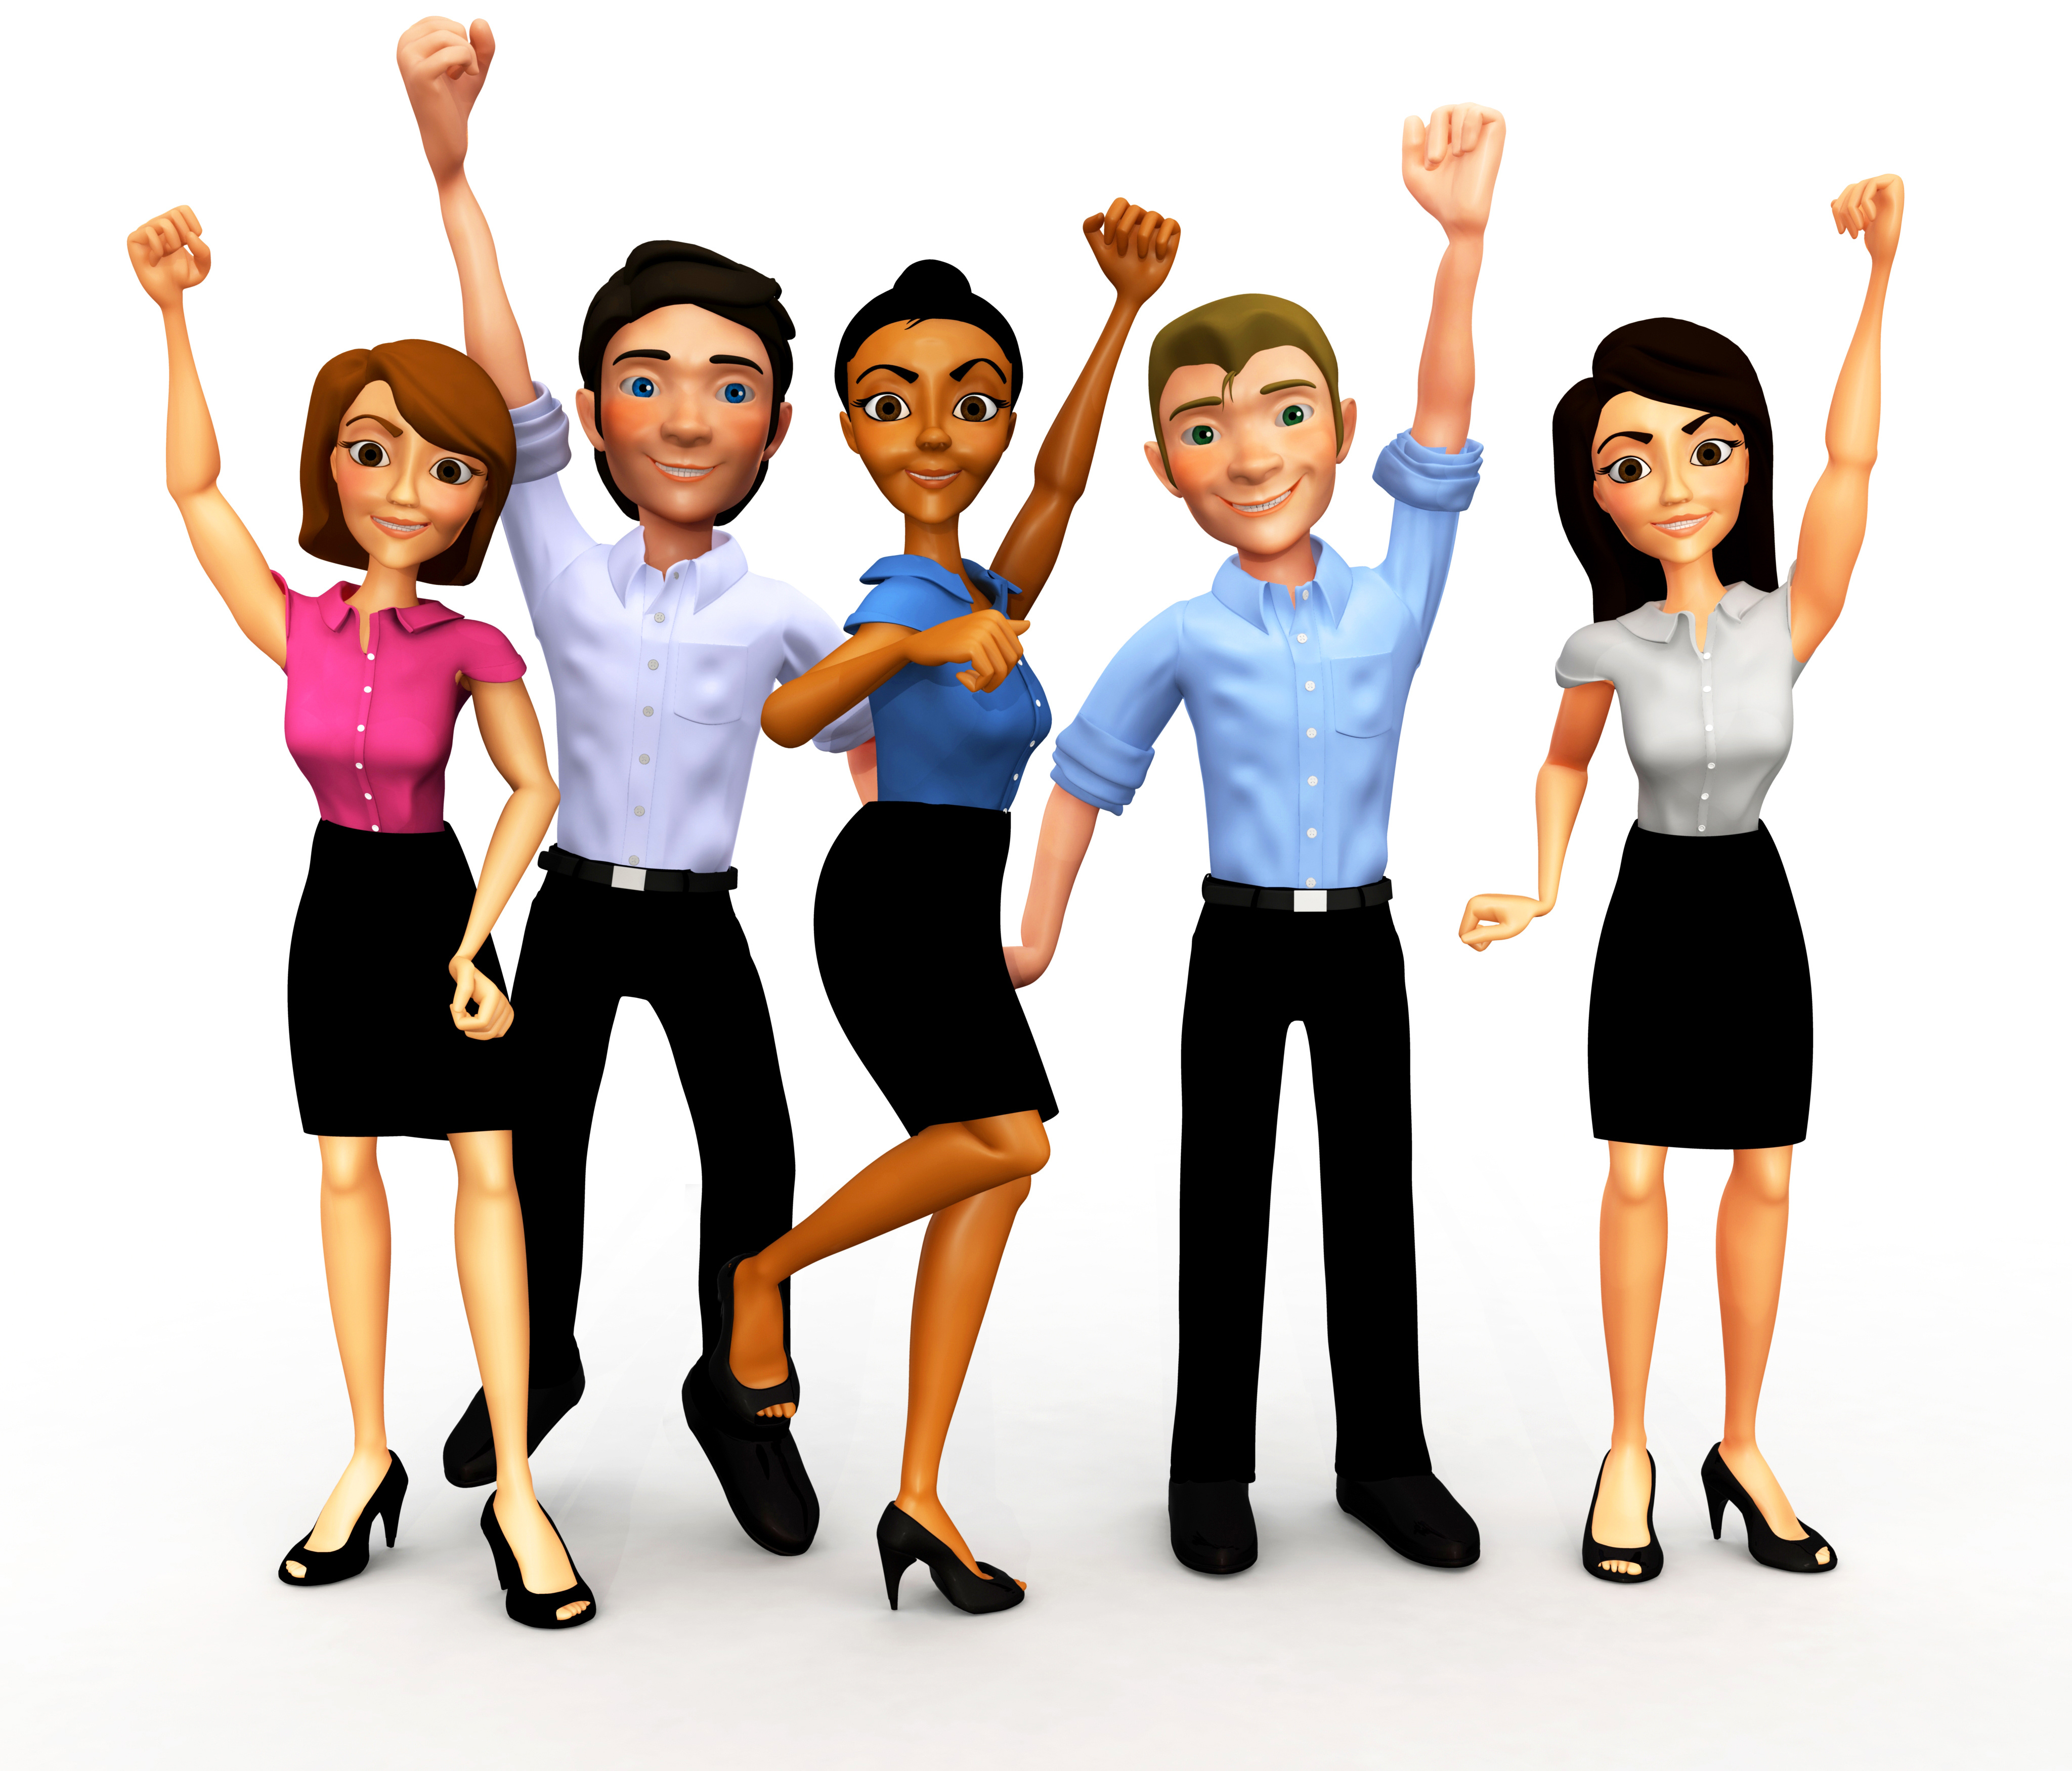 Free office cliparts download. Professional clipart staff